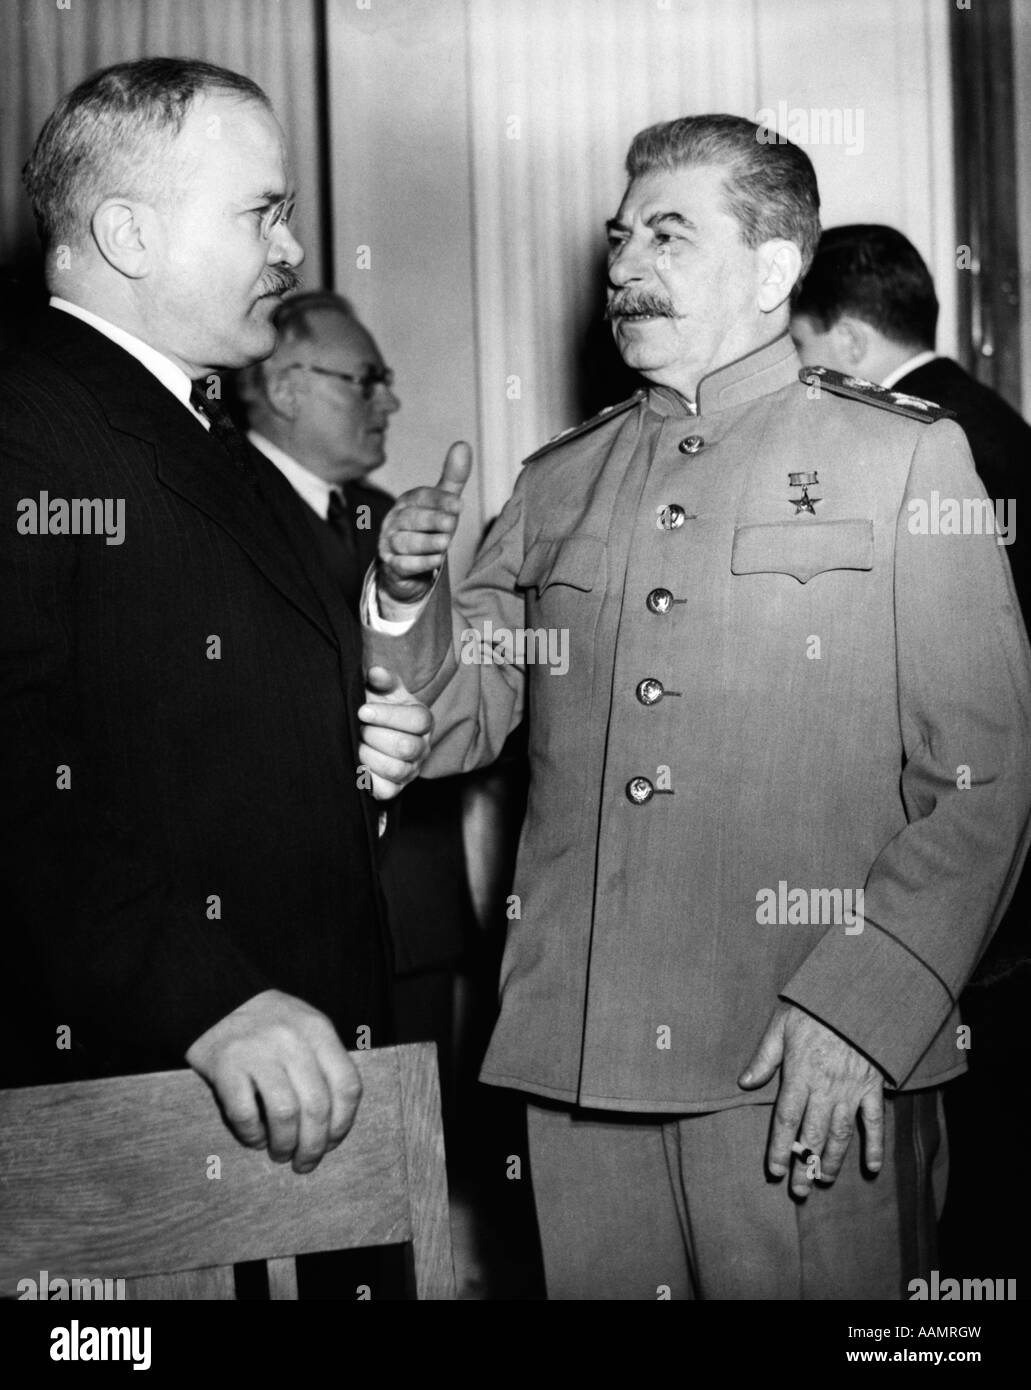 1940s JOSEF STALIN RUSSIAN LEADER WITH MOLOTOV YALTA CONFERENCE FEBRUARY 1945 - Stock Image